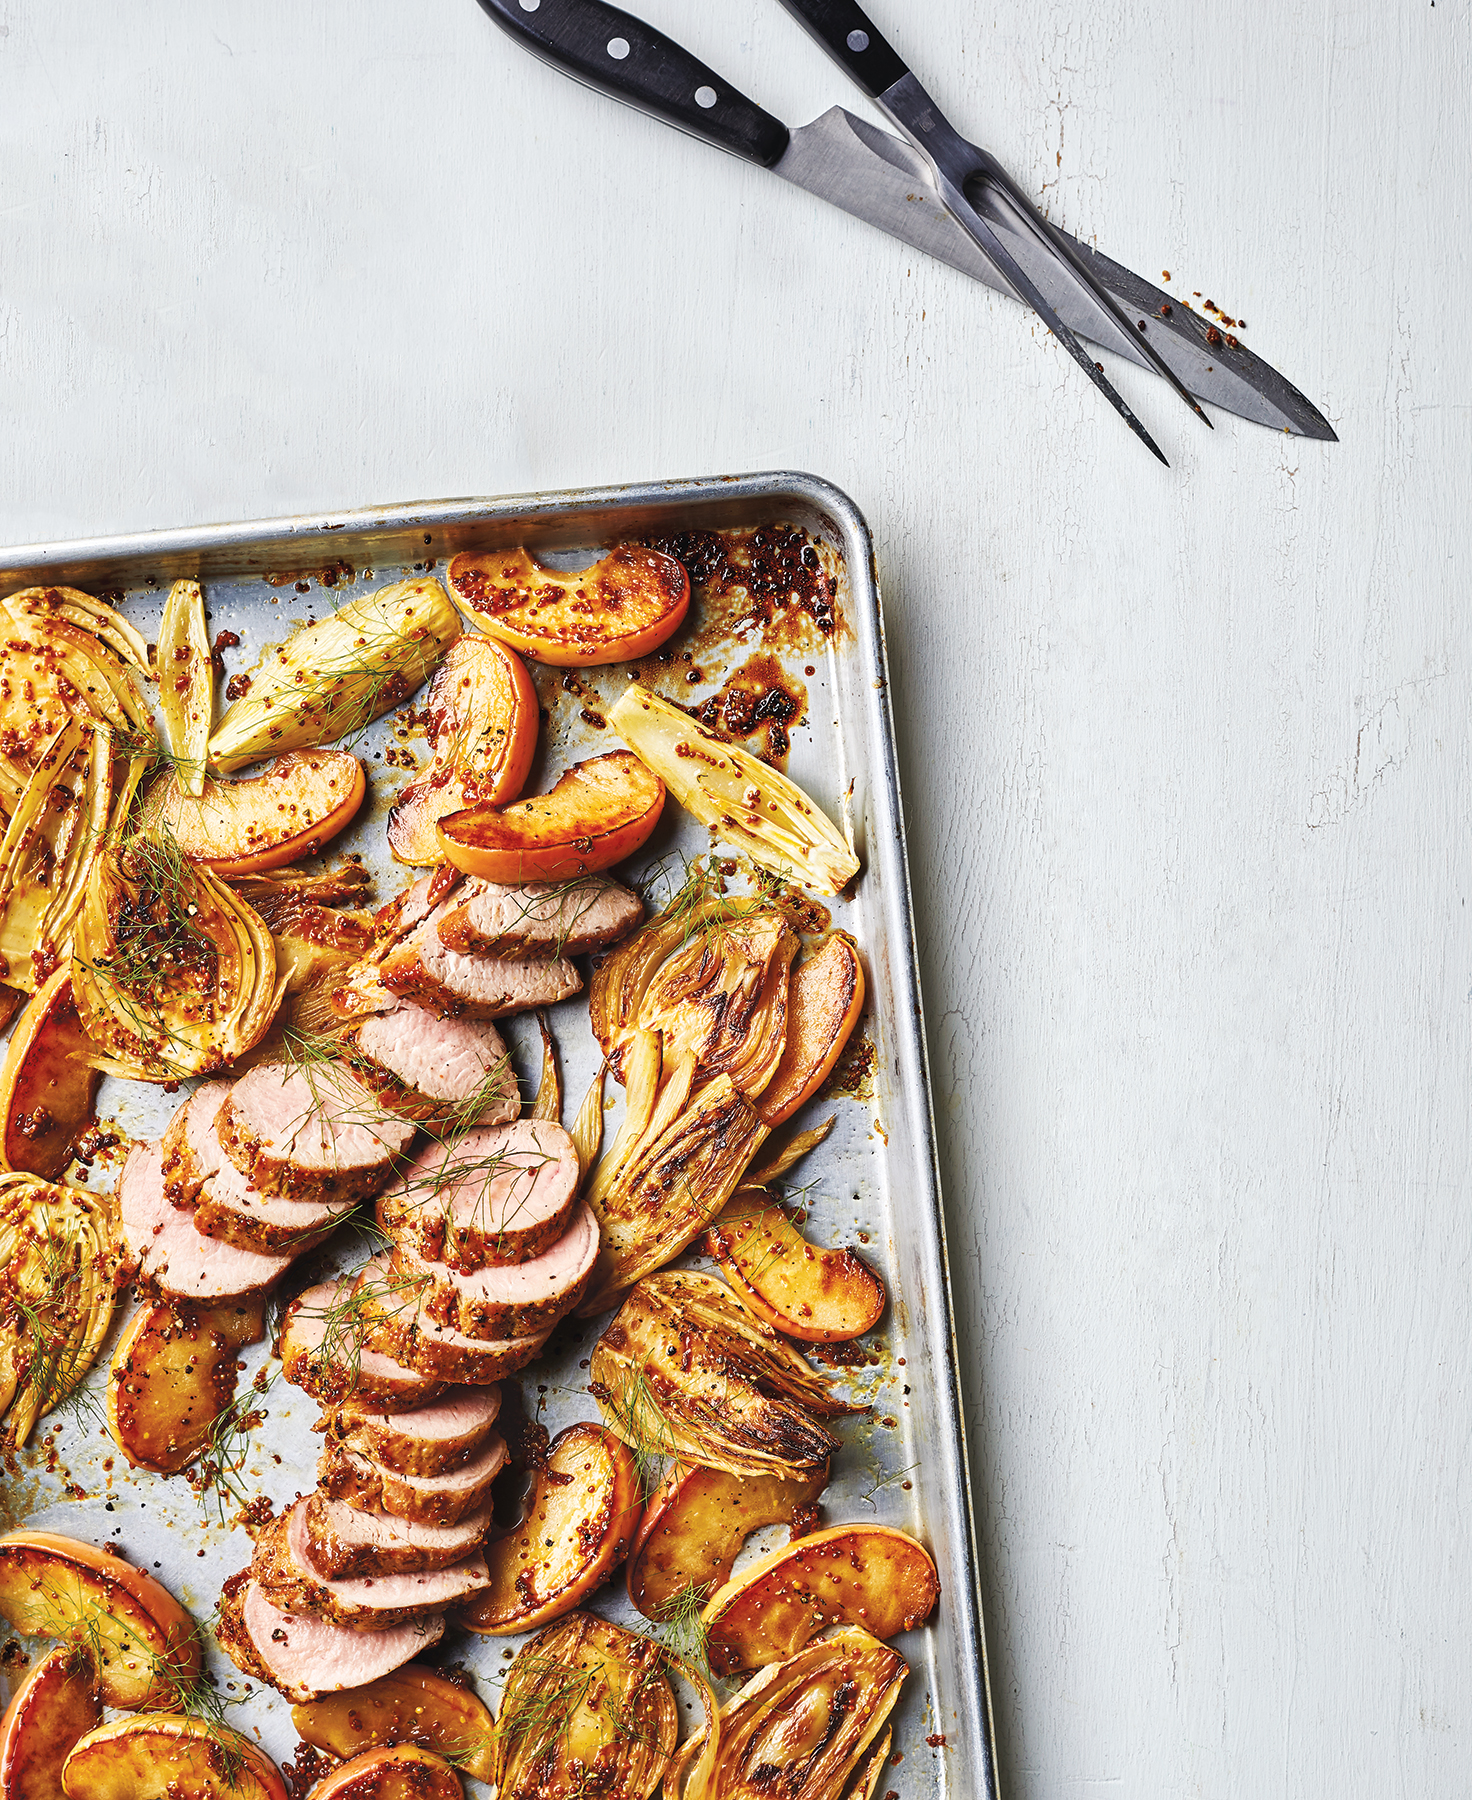 Sheet Pan Pork With Fennel and Apples